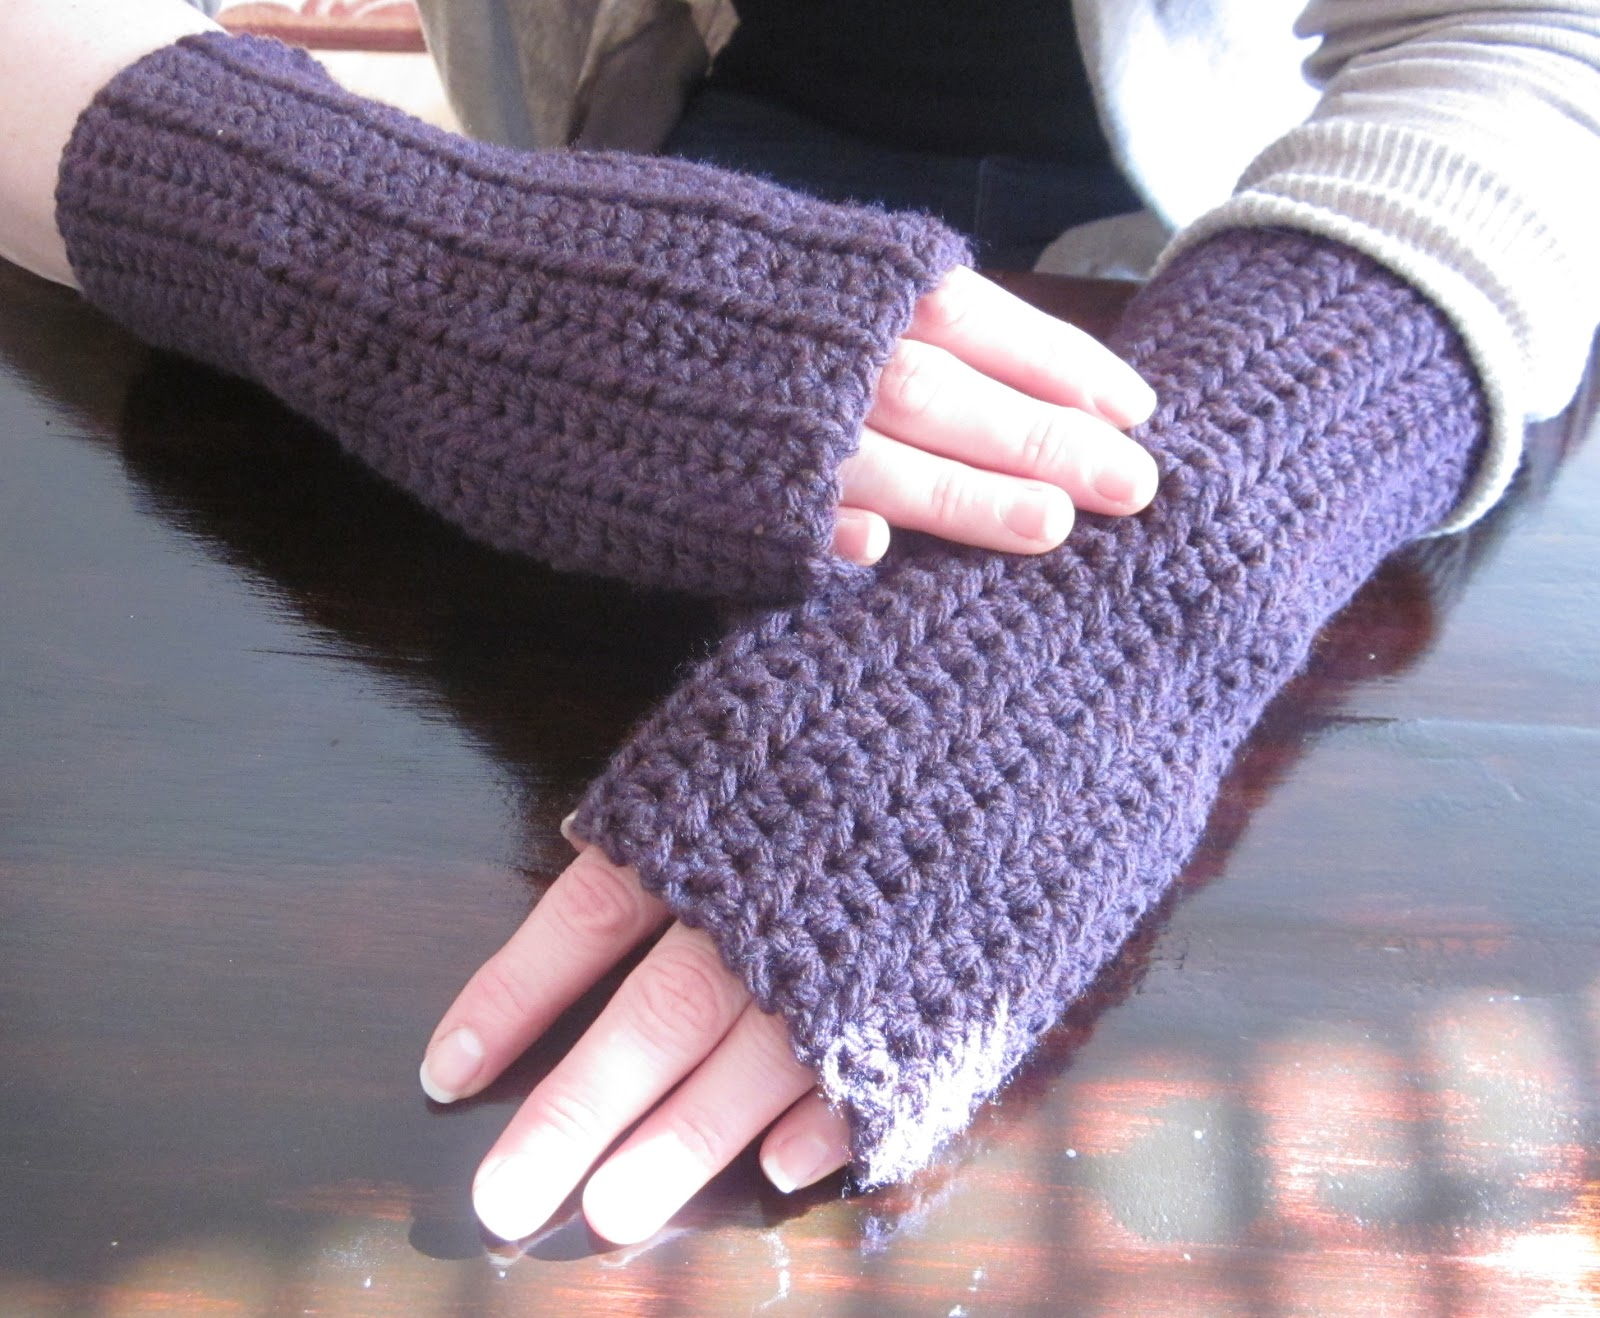 The Crafty Novice: DIY Crochet: Fingerless Gloves